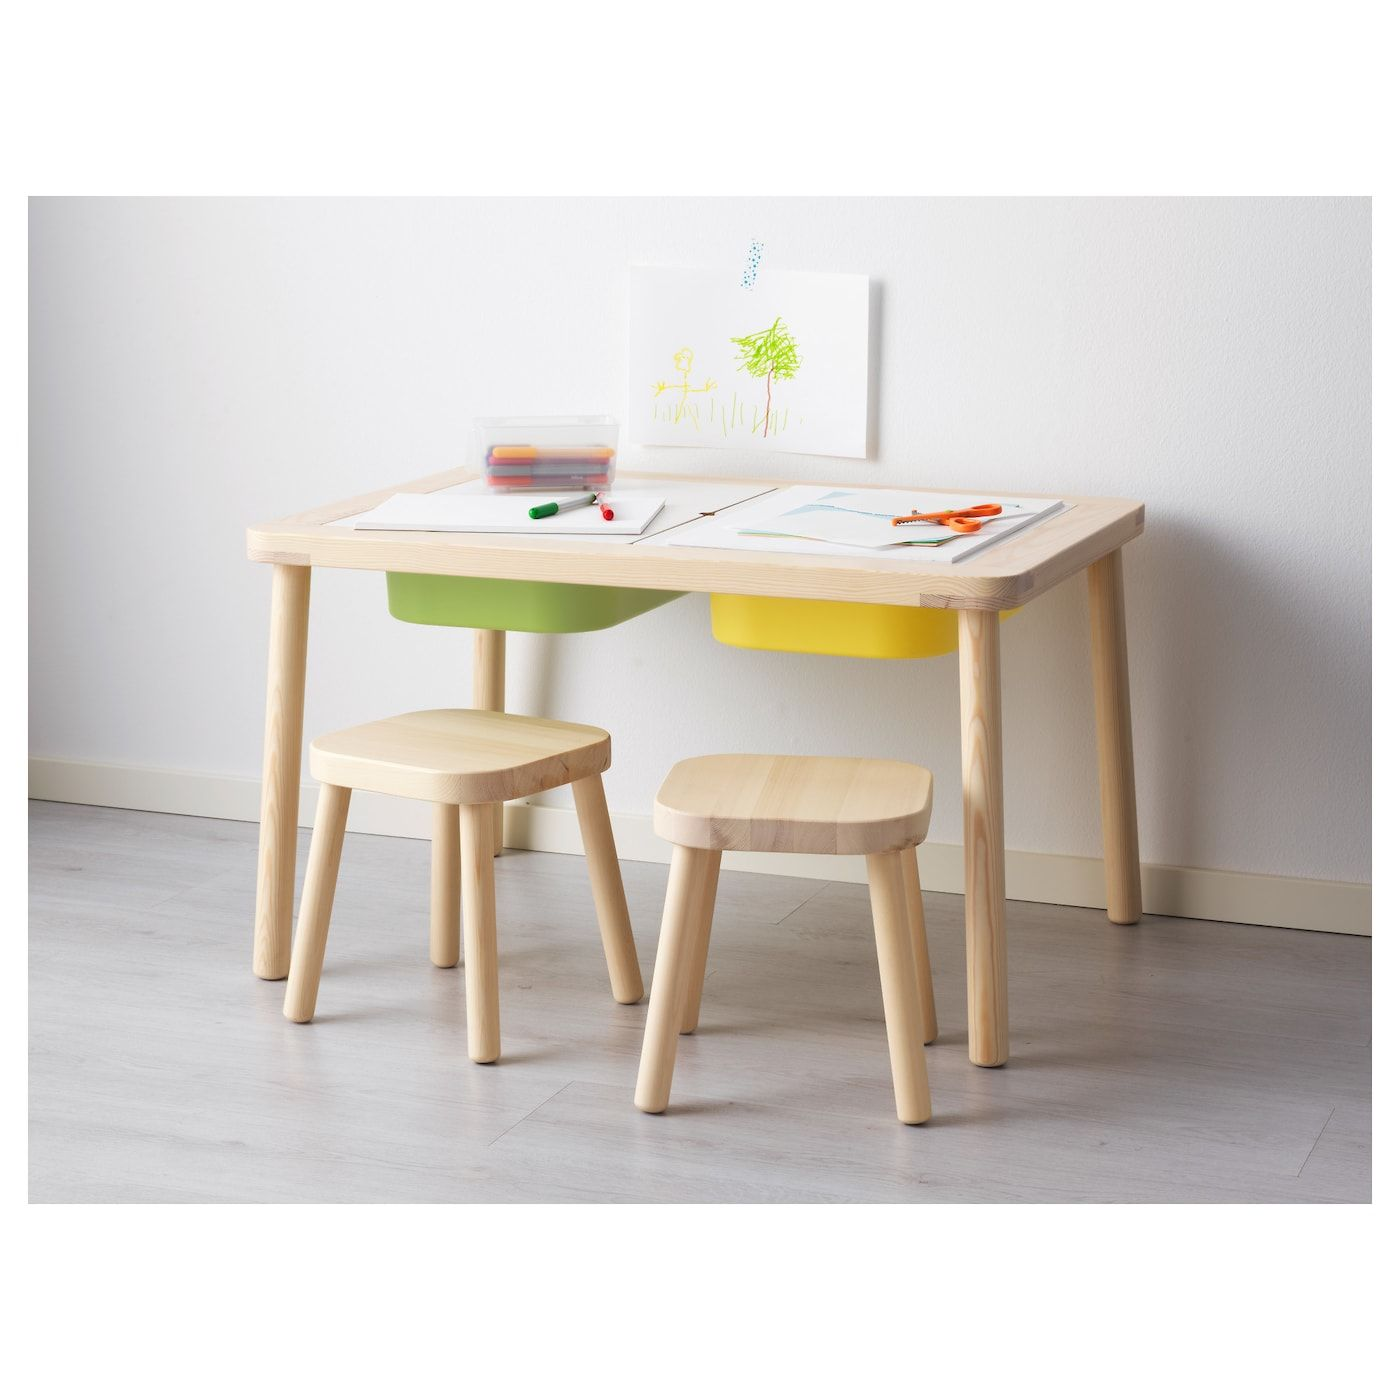 Kindertisch Flisat In 2019 Zeichentisch Ikea Kids Table Ikea